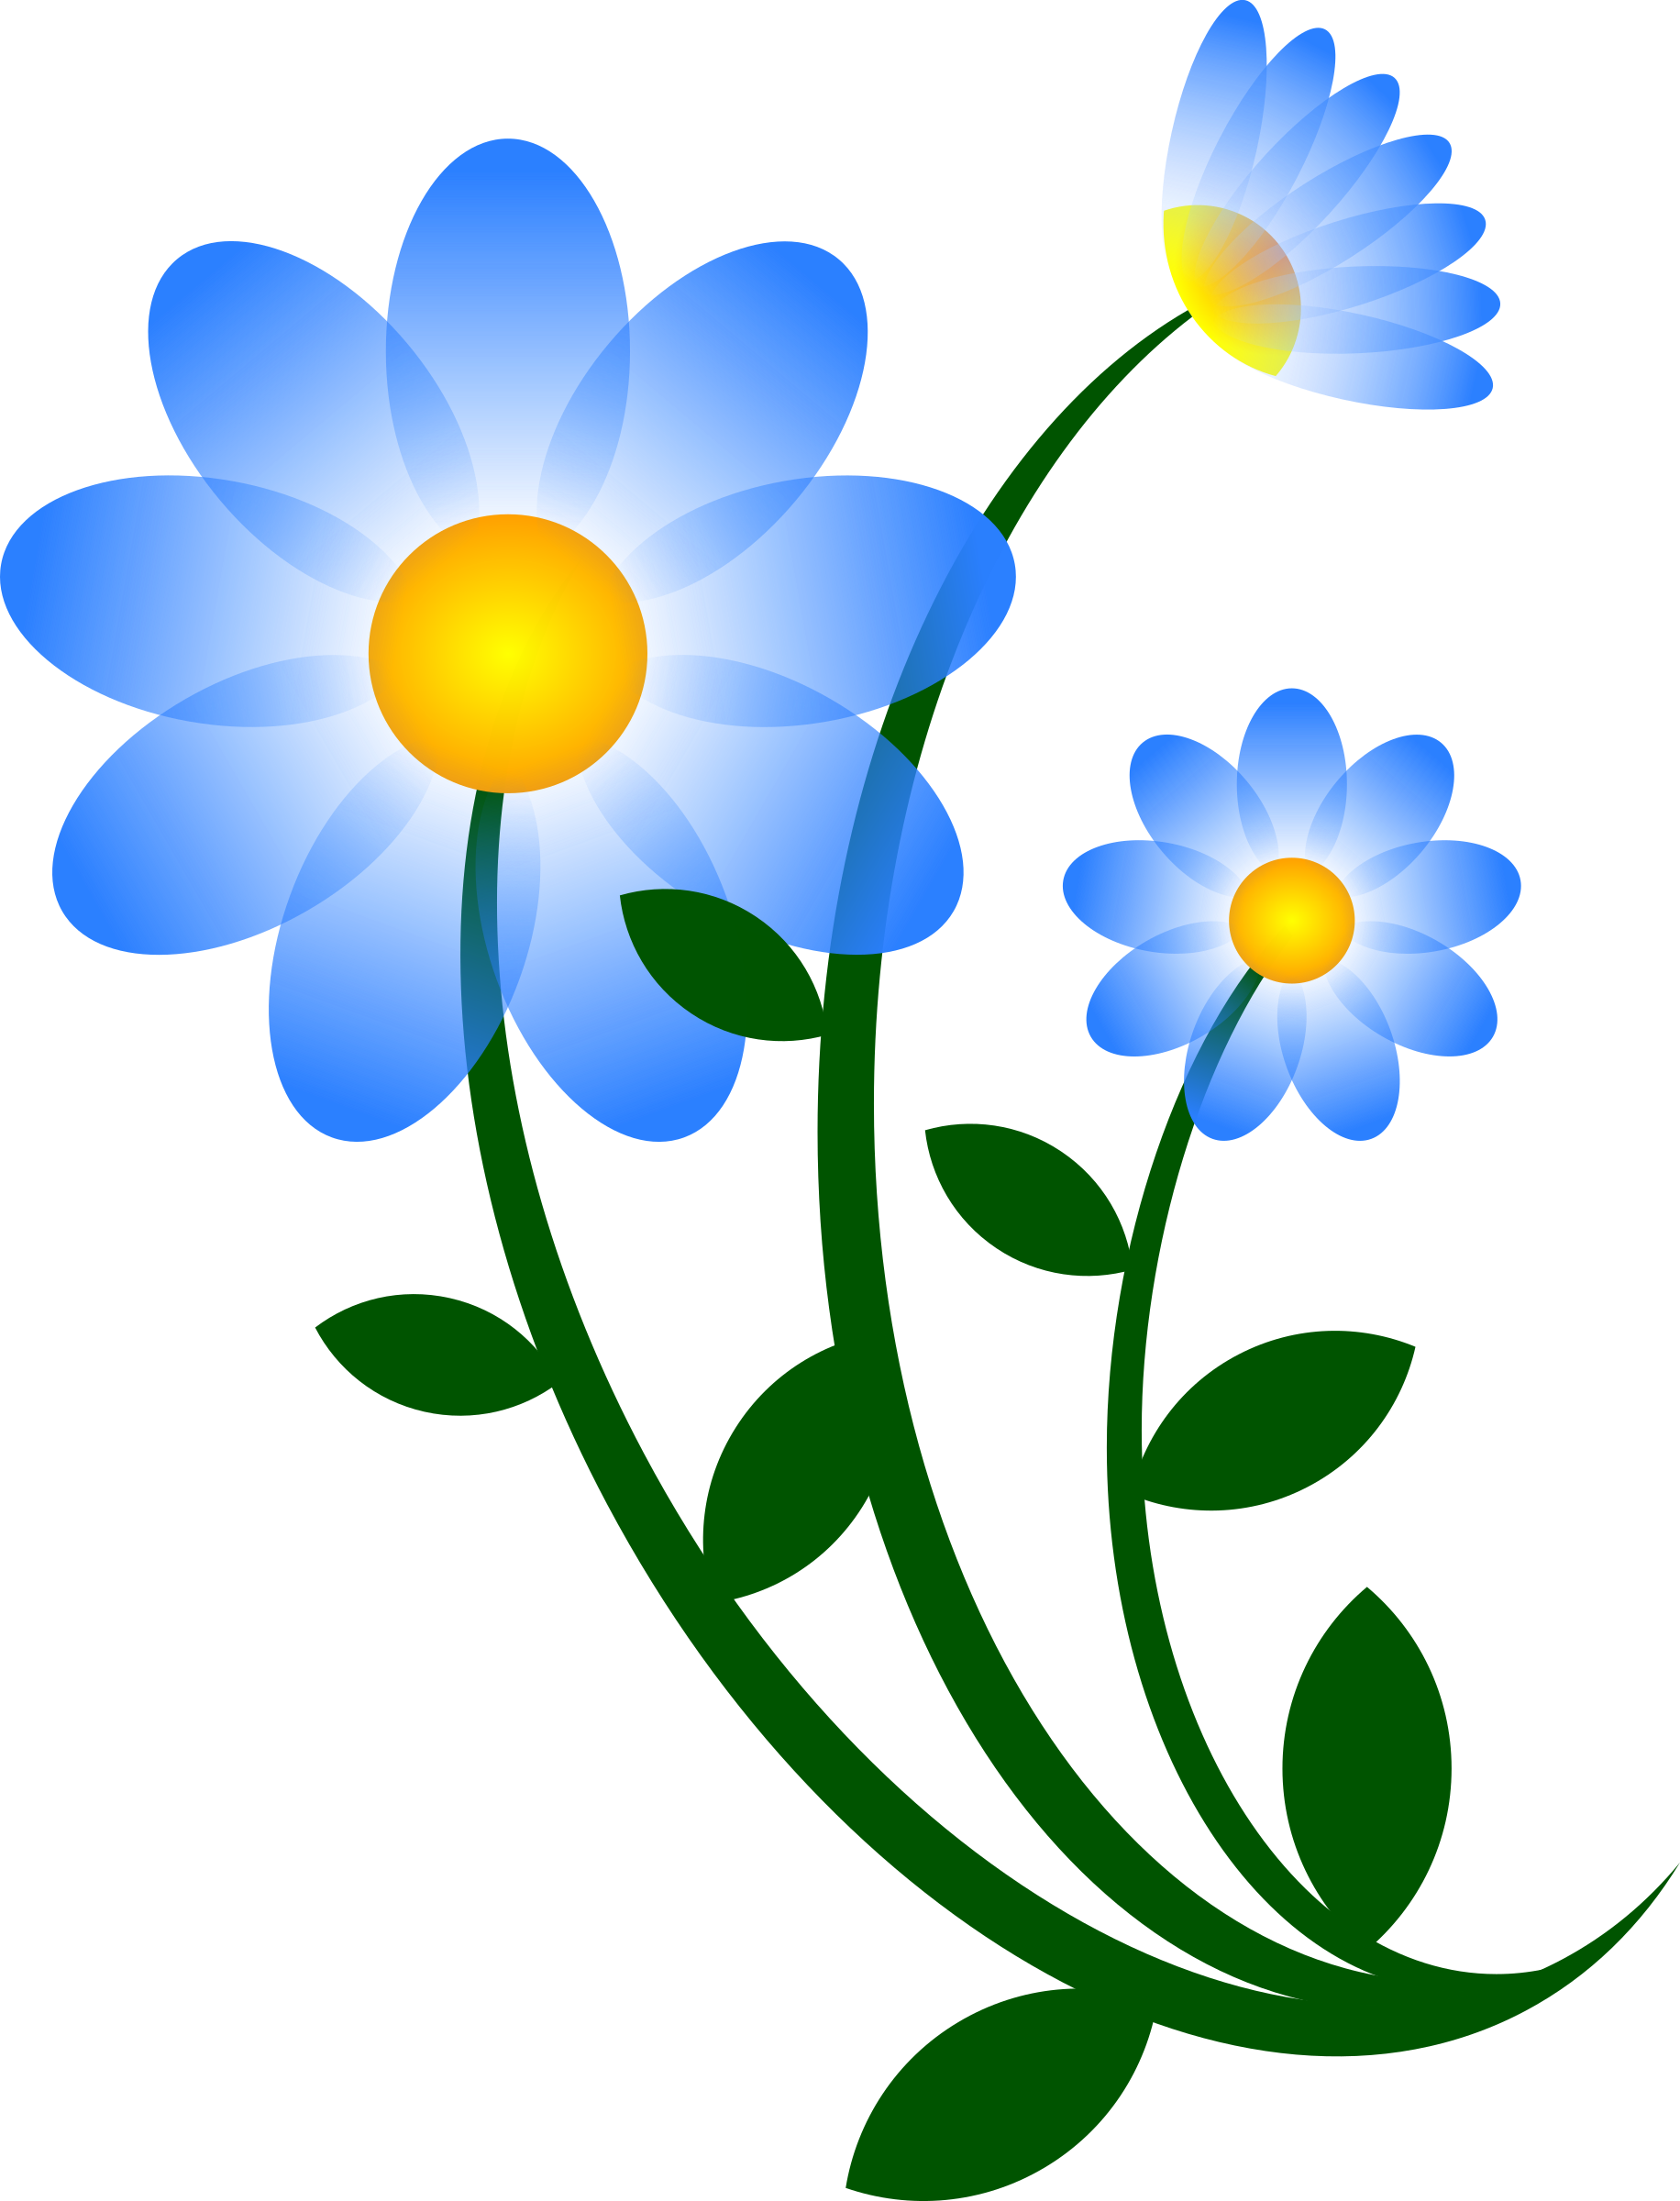 Blue Flower Motif by worker